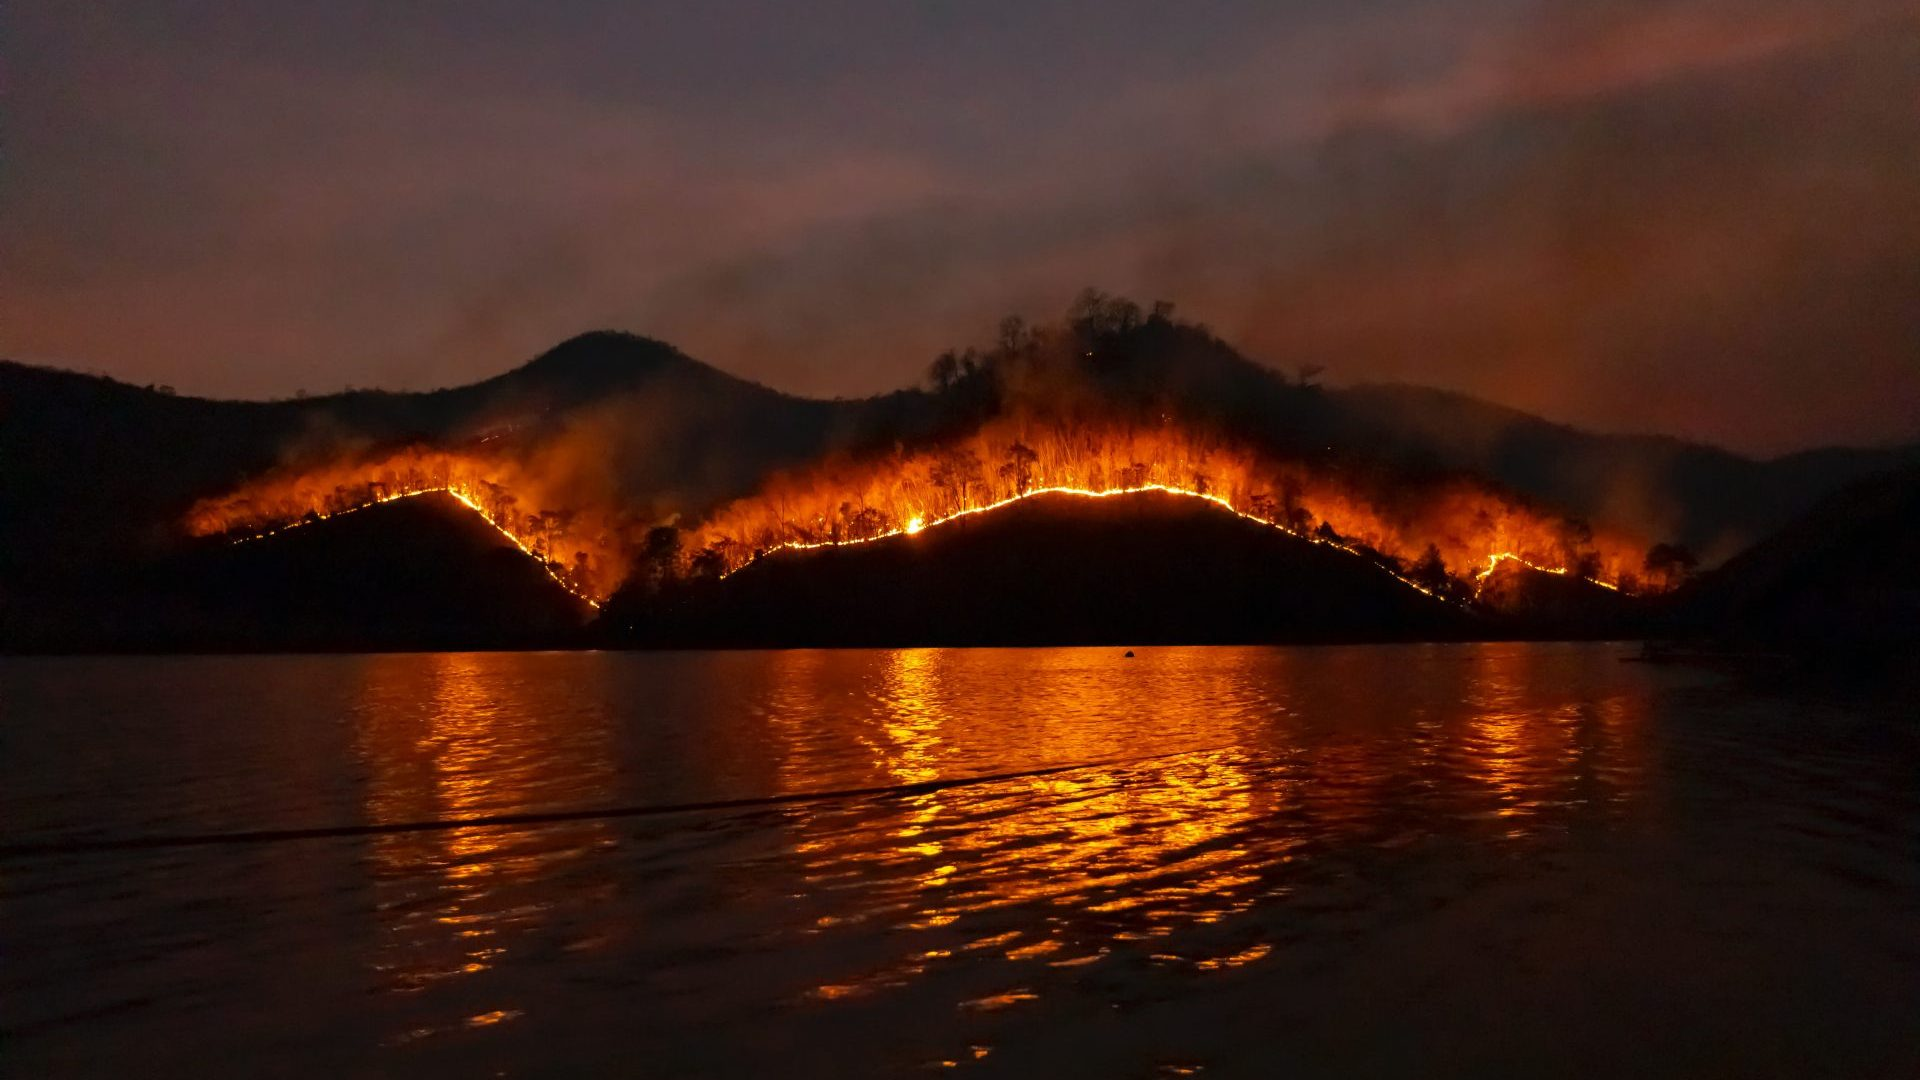 West Coast Fires continue to devastate the U.S.